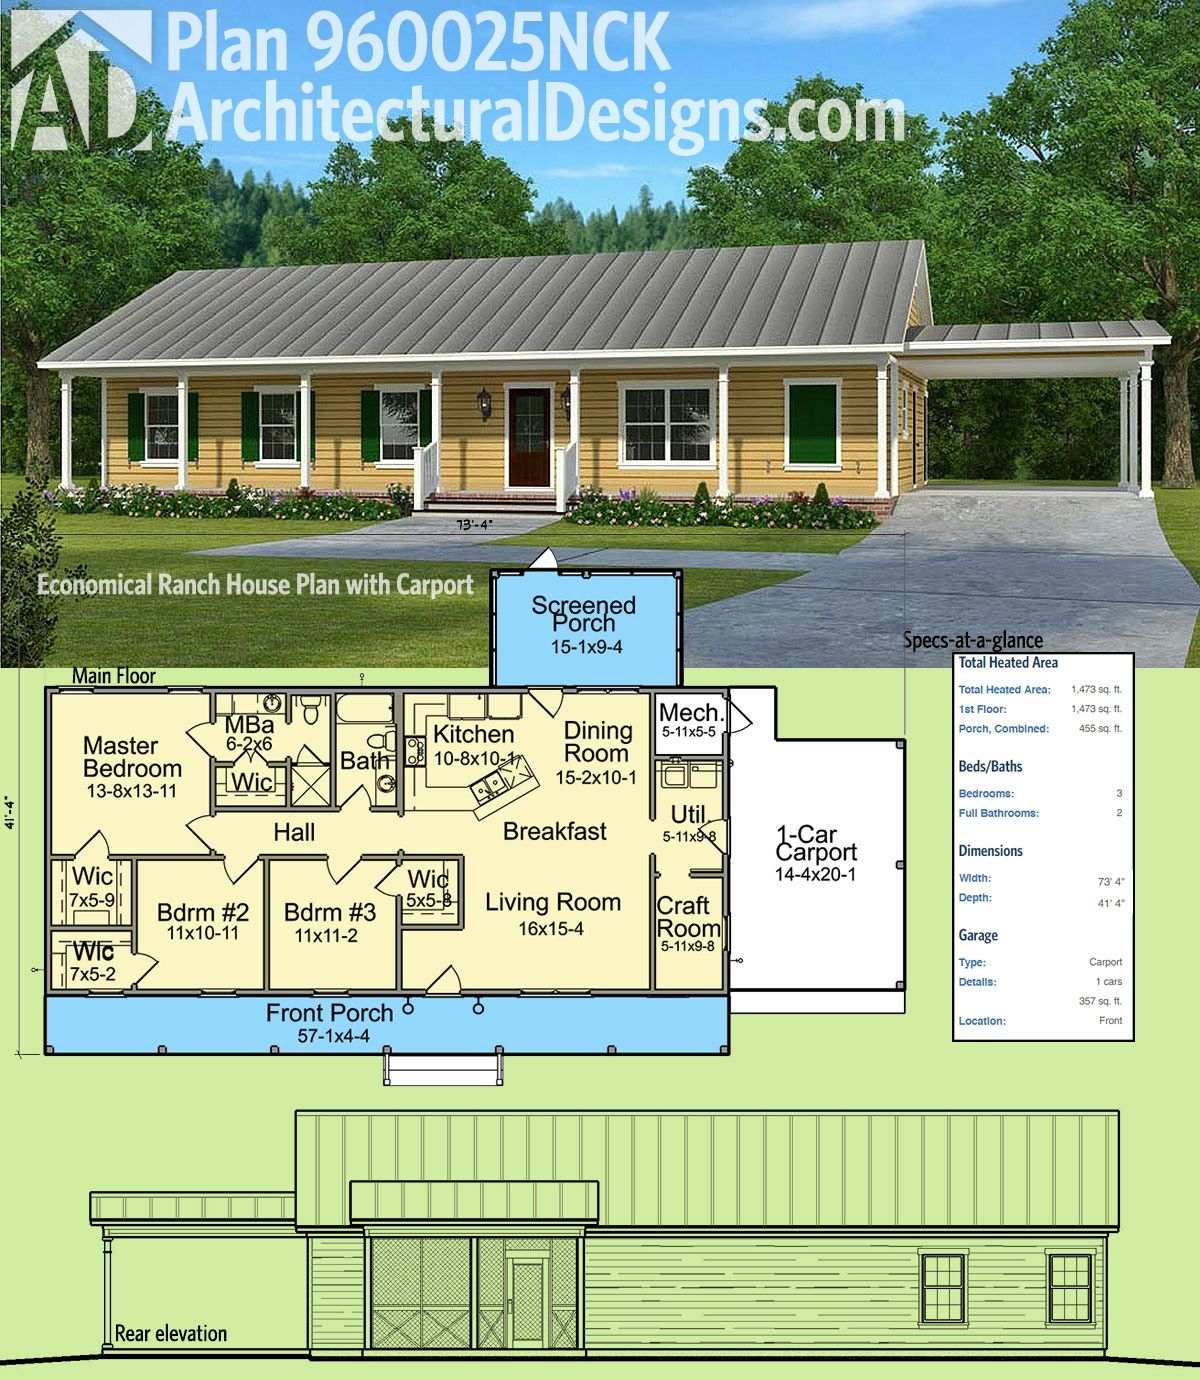 Plan 960025nck economical ranch house plan with carport for Economical house plans